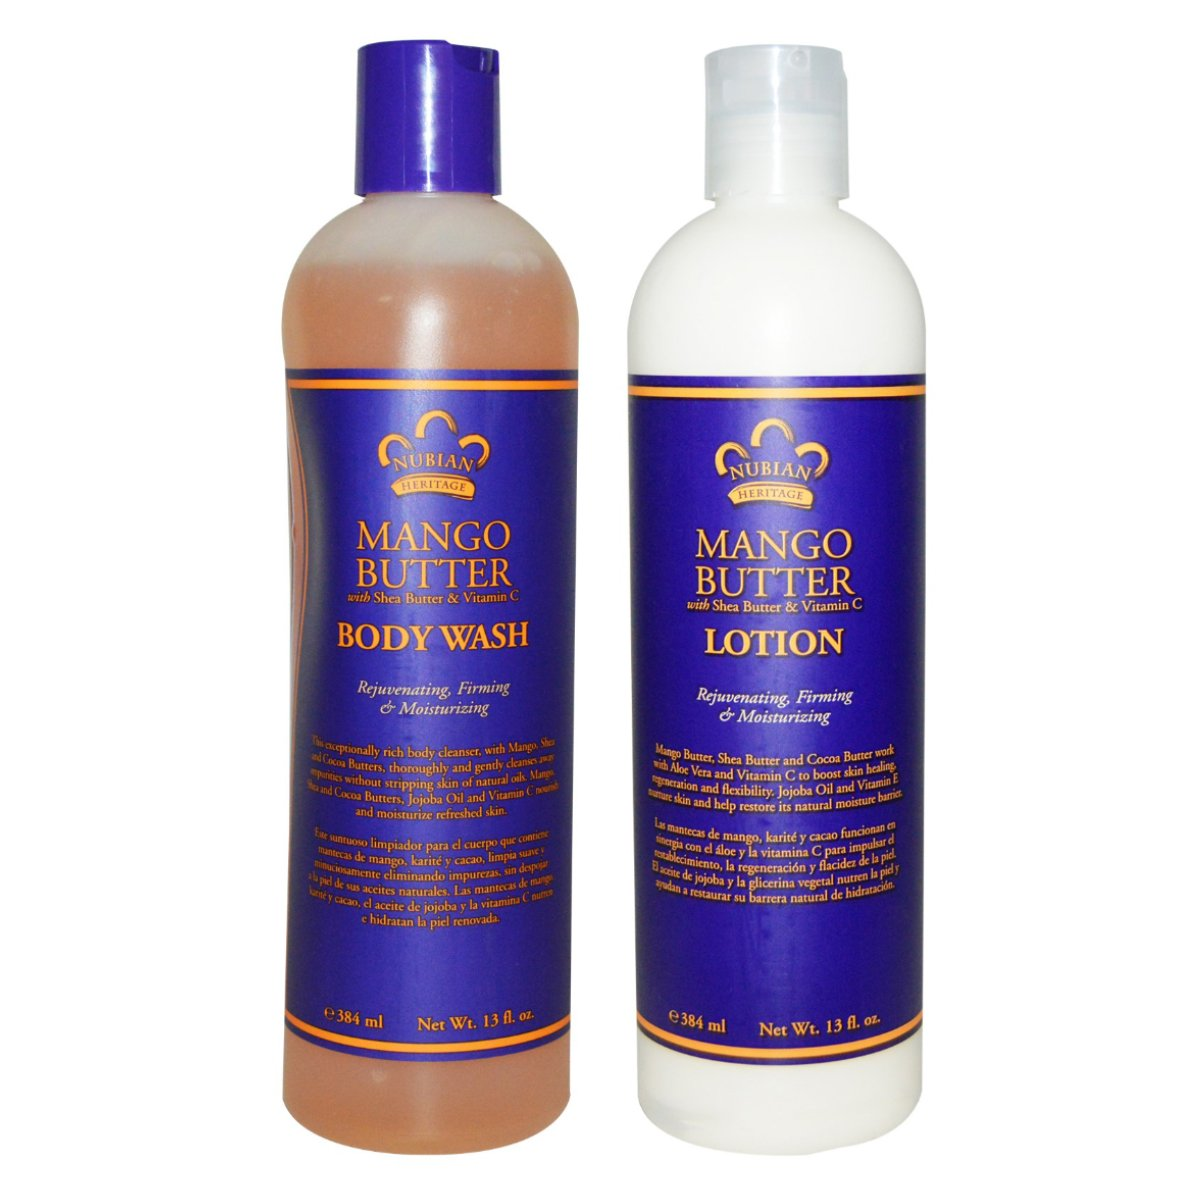 Amazon.com: Nubian Heritage Mango Butter Body Wash and Lotion Bundle, With Shea and Cocoa Butters, Aloe Vera, Jojoba Oil, Vitamin C and E, 13 fl oz each: ...